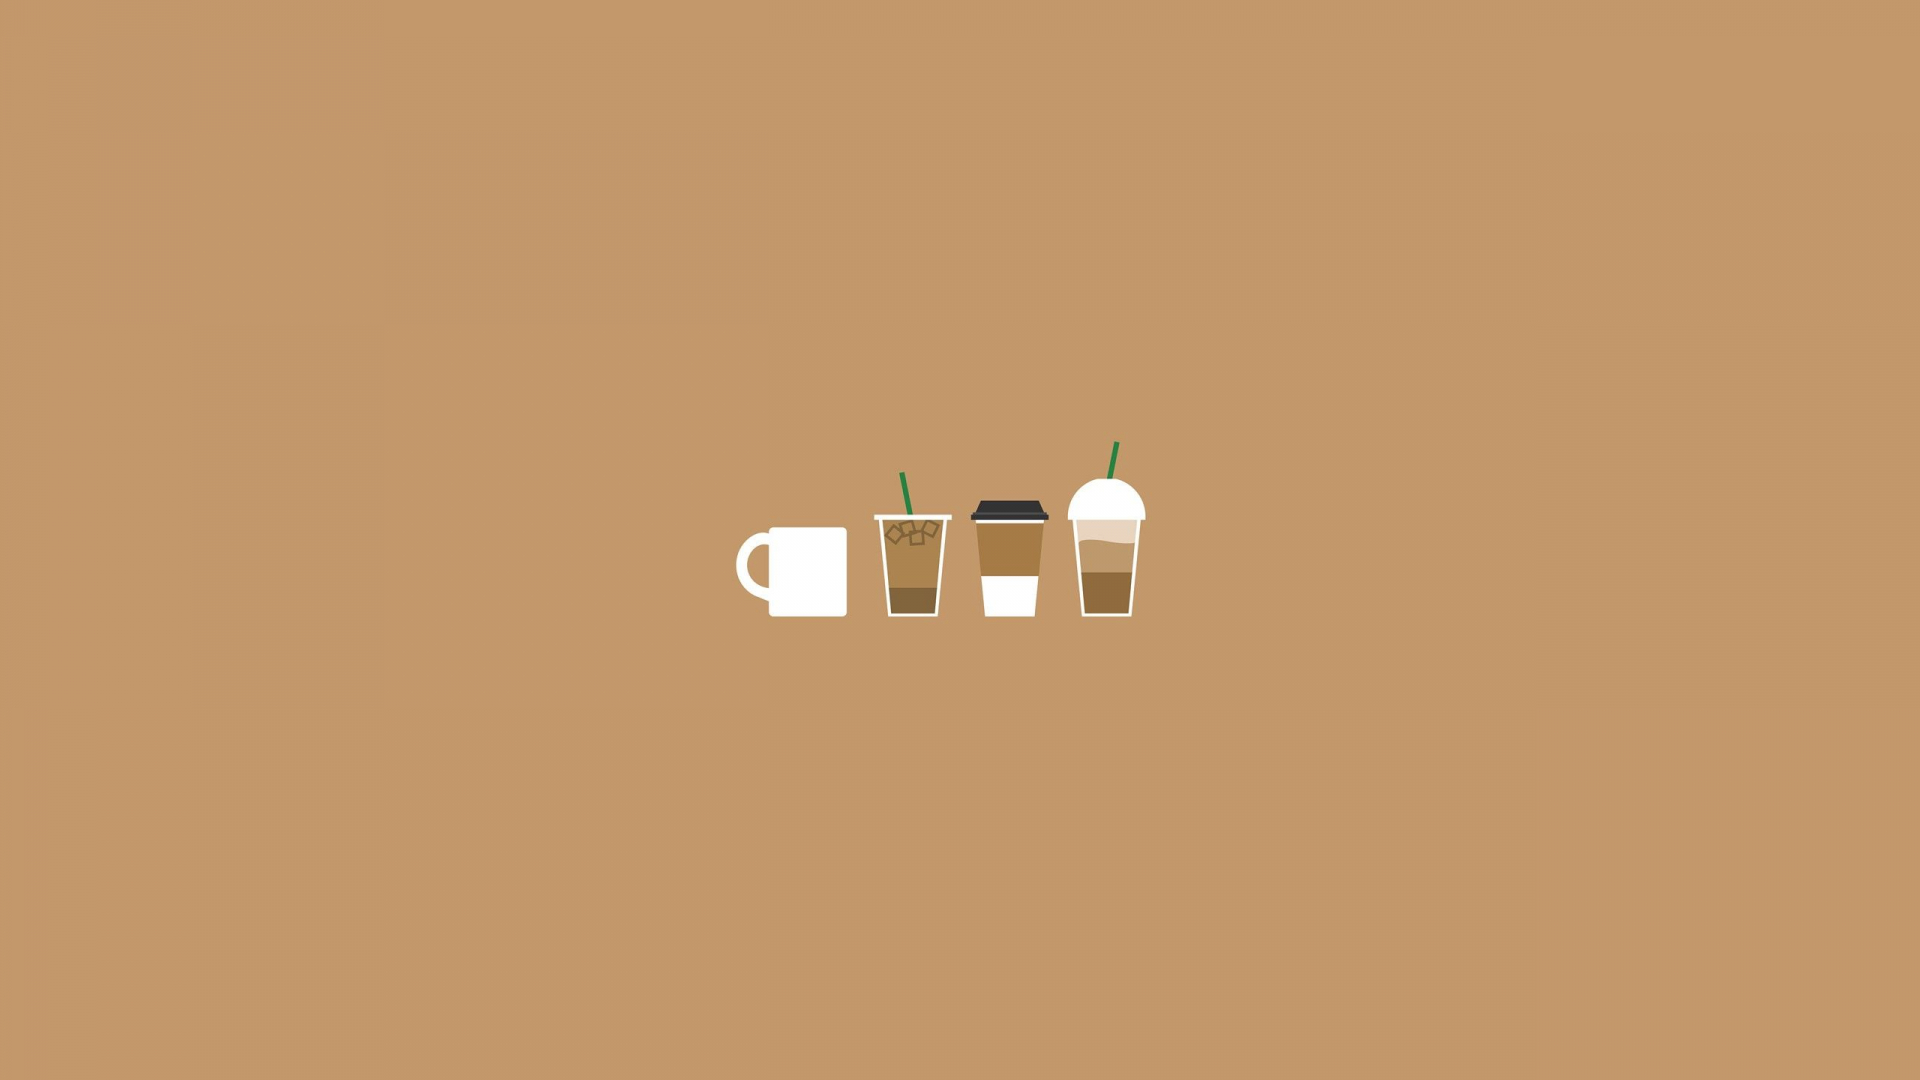 Free Download Coffee Illustration Aesthetic Desktop Wallpaper Minimalist 2560x1600 For Your Desktop Mobile Tablet Explore 45 Aesthetic Simple Laptop Wallpapers Aesthetic Simple Laptop Wallpapers Simple Aesthetic Wallpapers Hd Simple